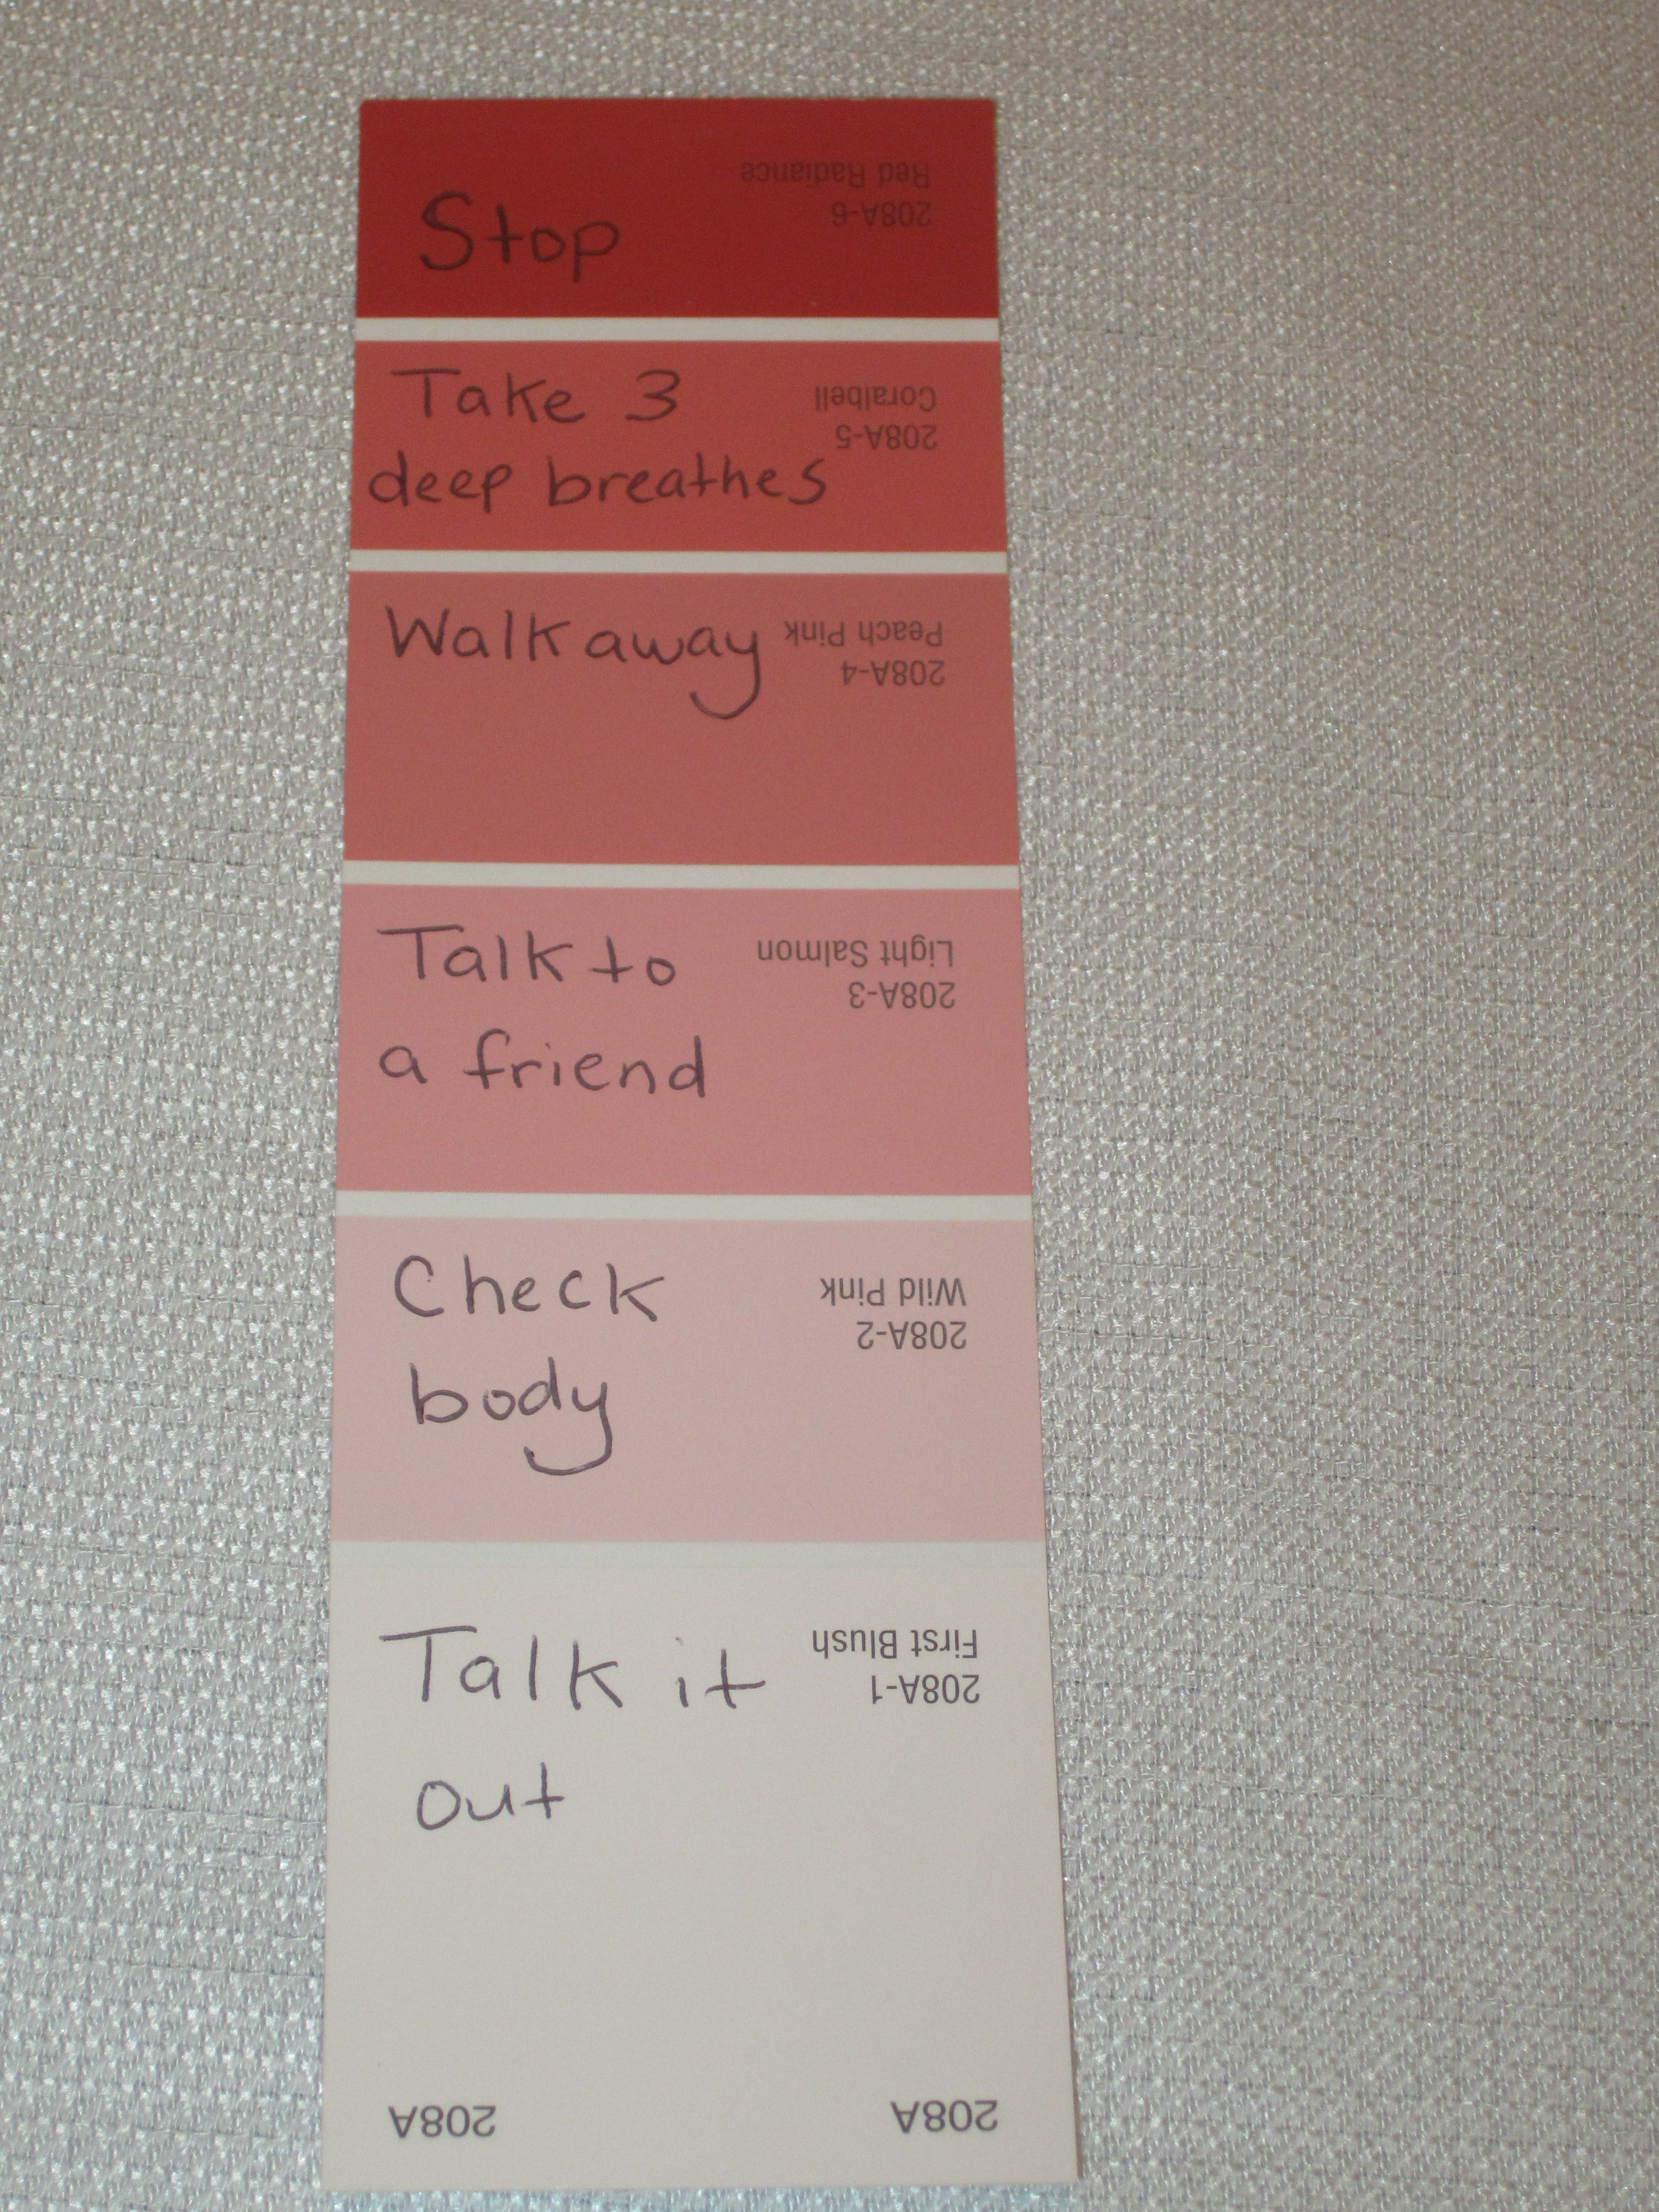 Use Color Swatch For Anger Management I LOVE This To Help Some Of My Clients Track Where They Are Could Be Used With Other Feelings